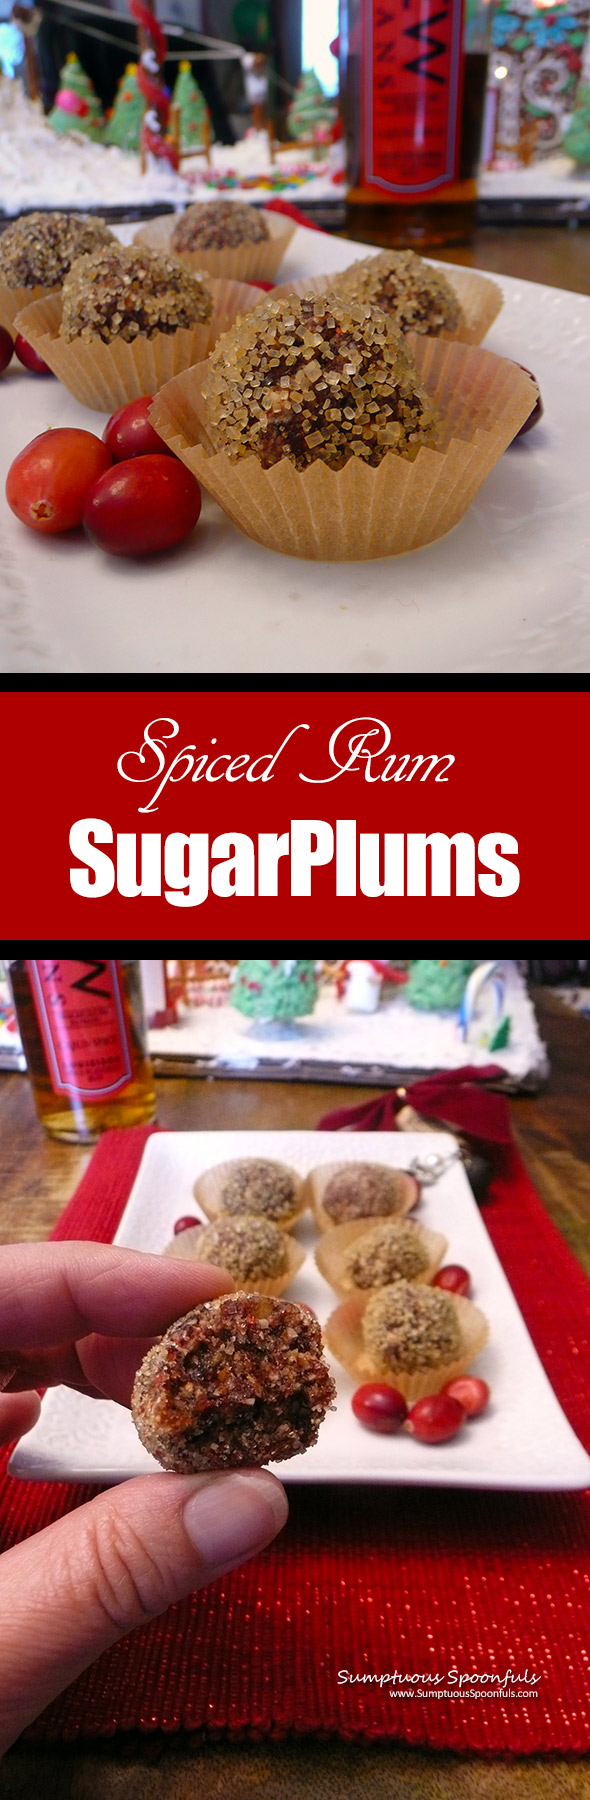 Spiced Rum Sugar Plums ~ Sumptuous Spoonfuls #holiday #dessert #recipe